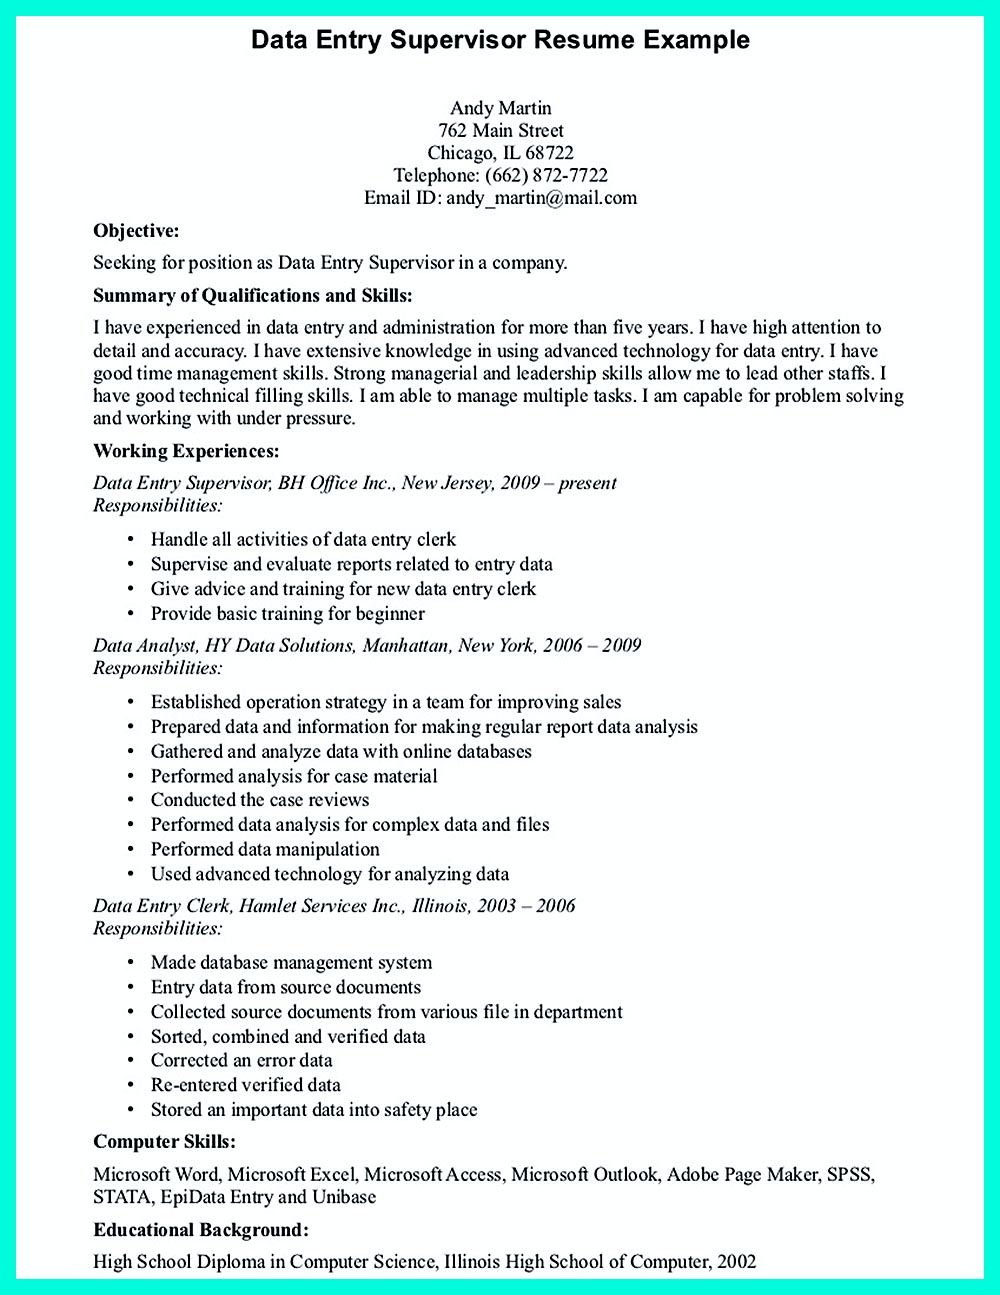 Pin On Resume Sample Template And Format Pinterest Resume Objective